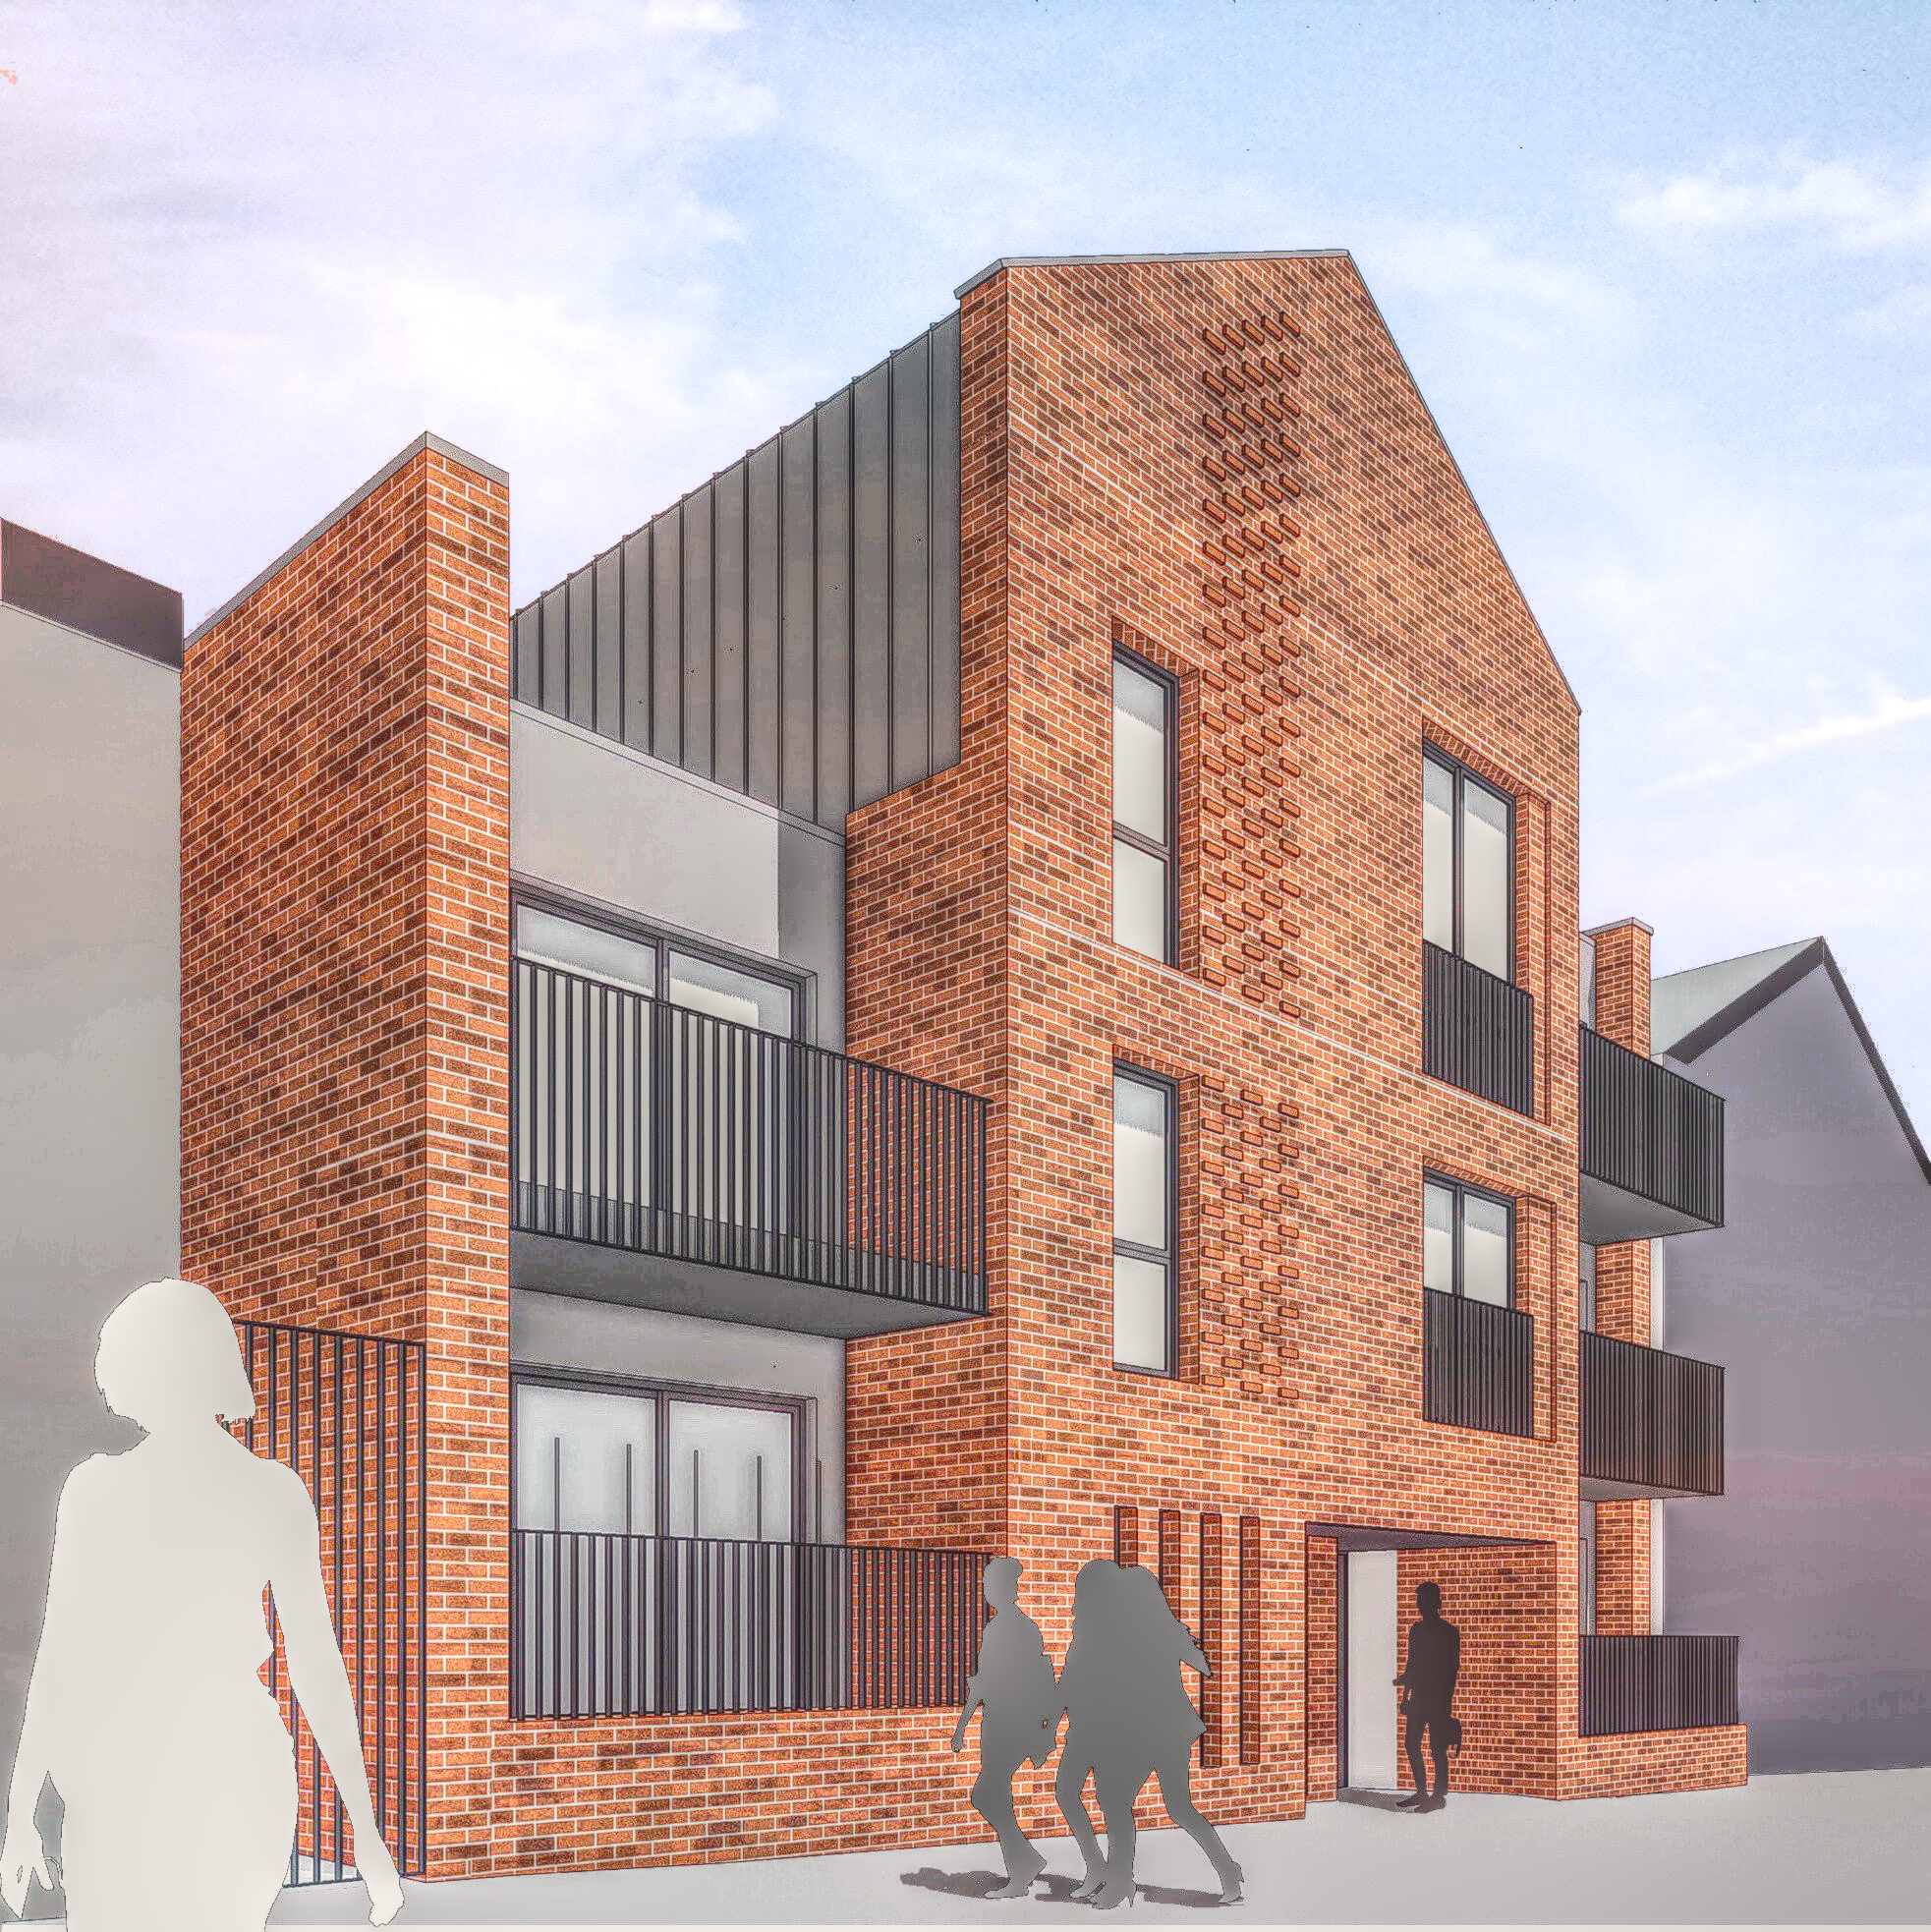 Planning win for residential development in BS3